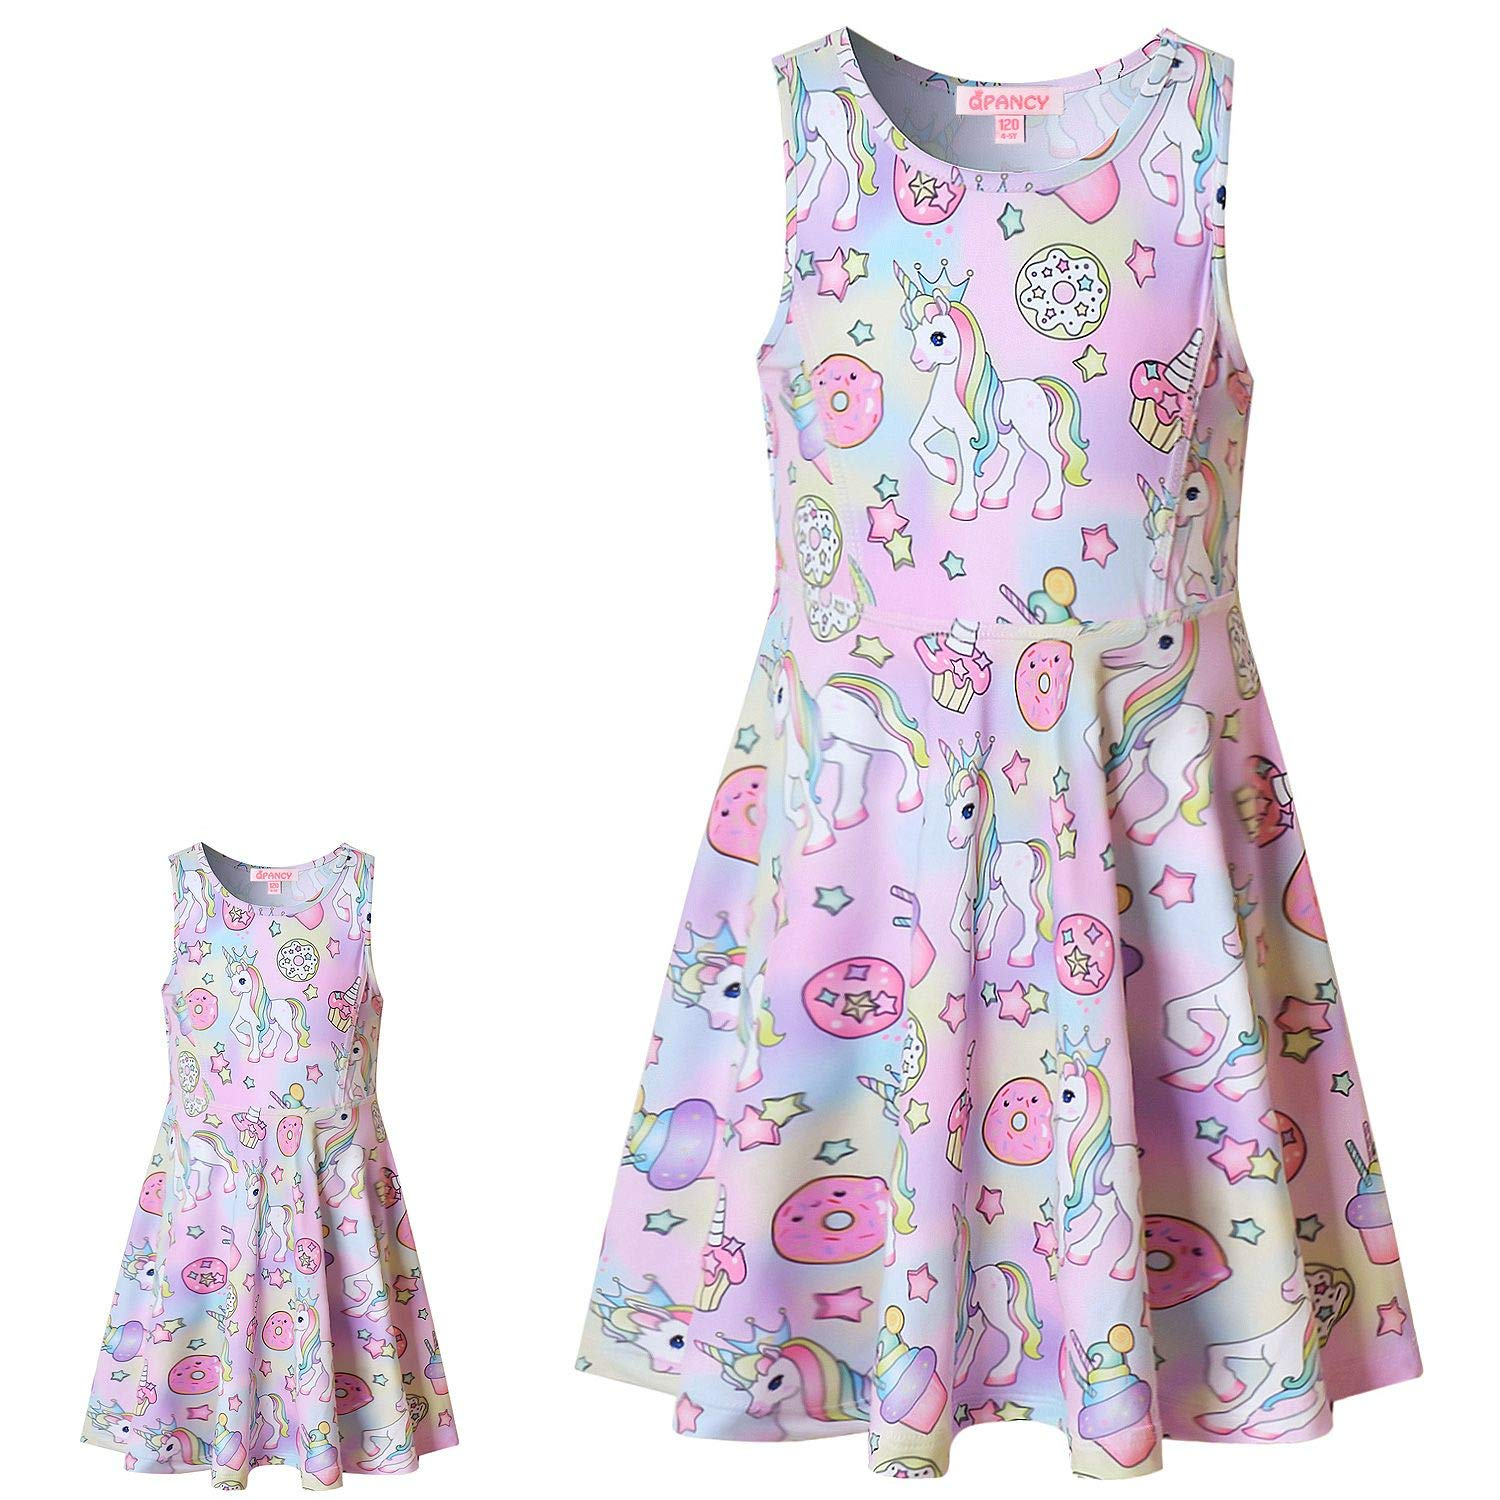 18 inch Doll Clothes for American Girl Unicorn Dresses Costume and Accessories Set